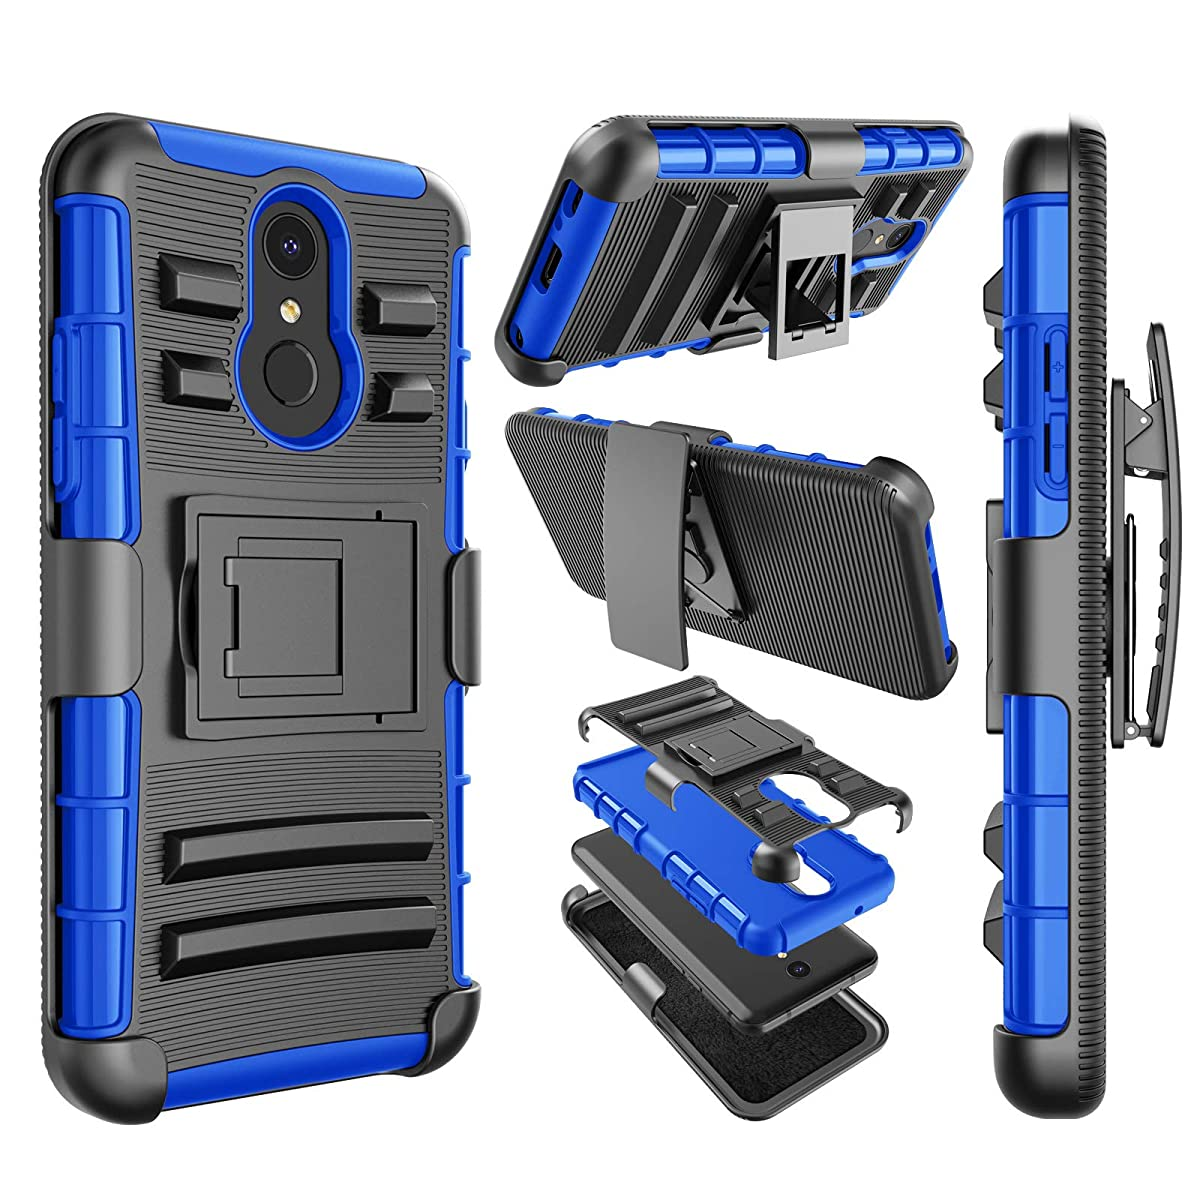 Njjex LG Q7 Case, for LG Q7 Plus Case, LG Q7 Alpha Holster Clip, [Ngate] Armor Shockproof Locking Swivel Belt Clip Kickstand Heavy Duty Defender Full Body Carrying Phone Cover for LG Q7+ 2018 [Blue]